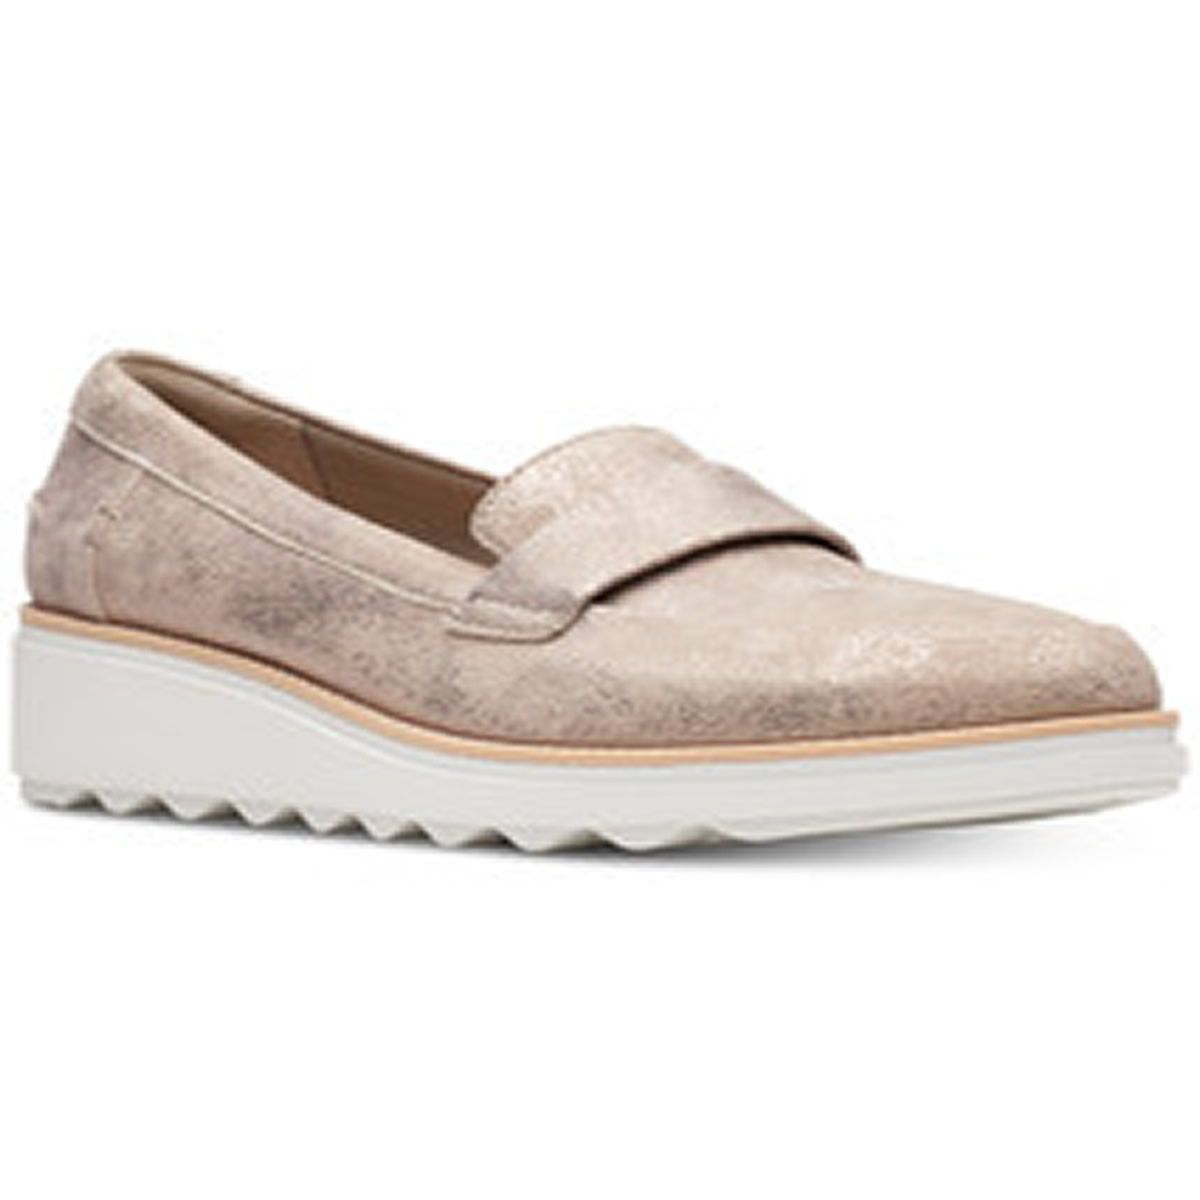 463a0c2aee470e Clarks Shoes for Women - Macy's